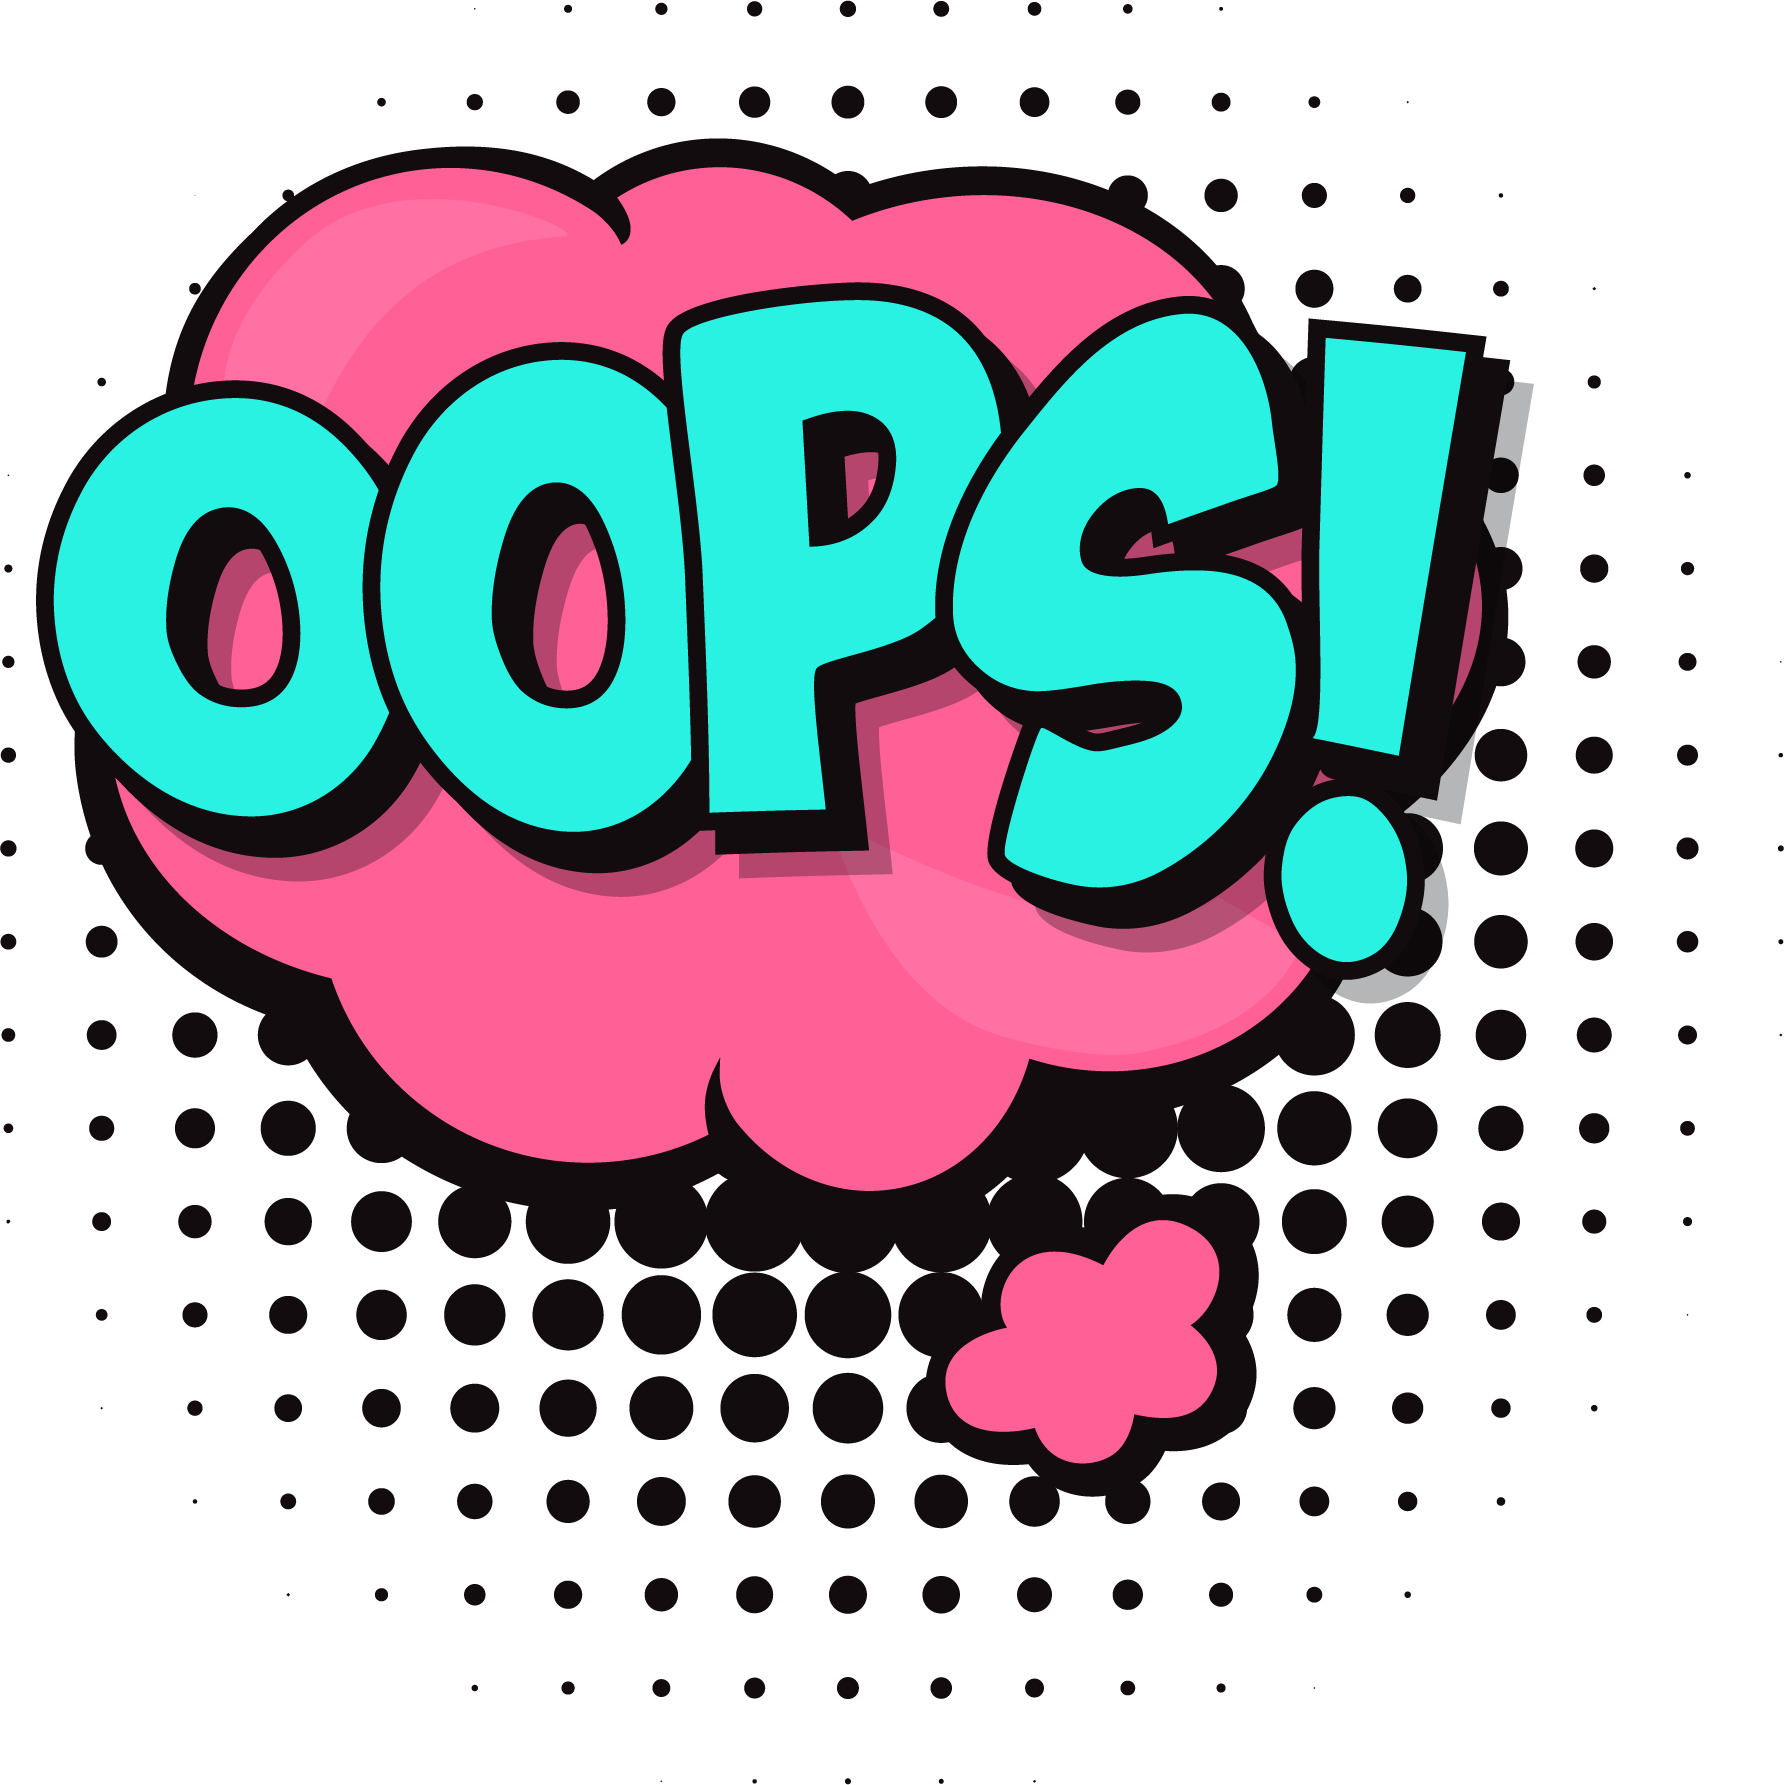 Oops Cloud Transparent & PNG Clipart Free Download - YA-webdesign